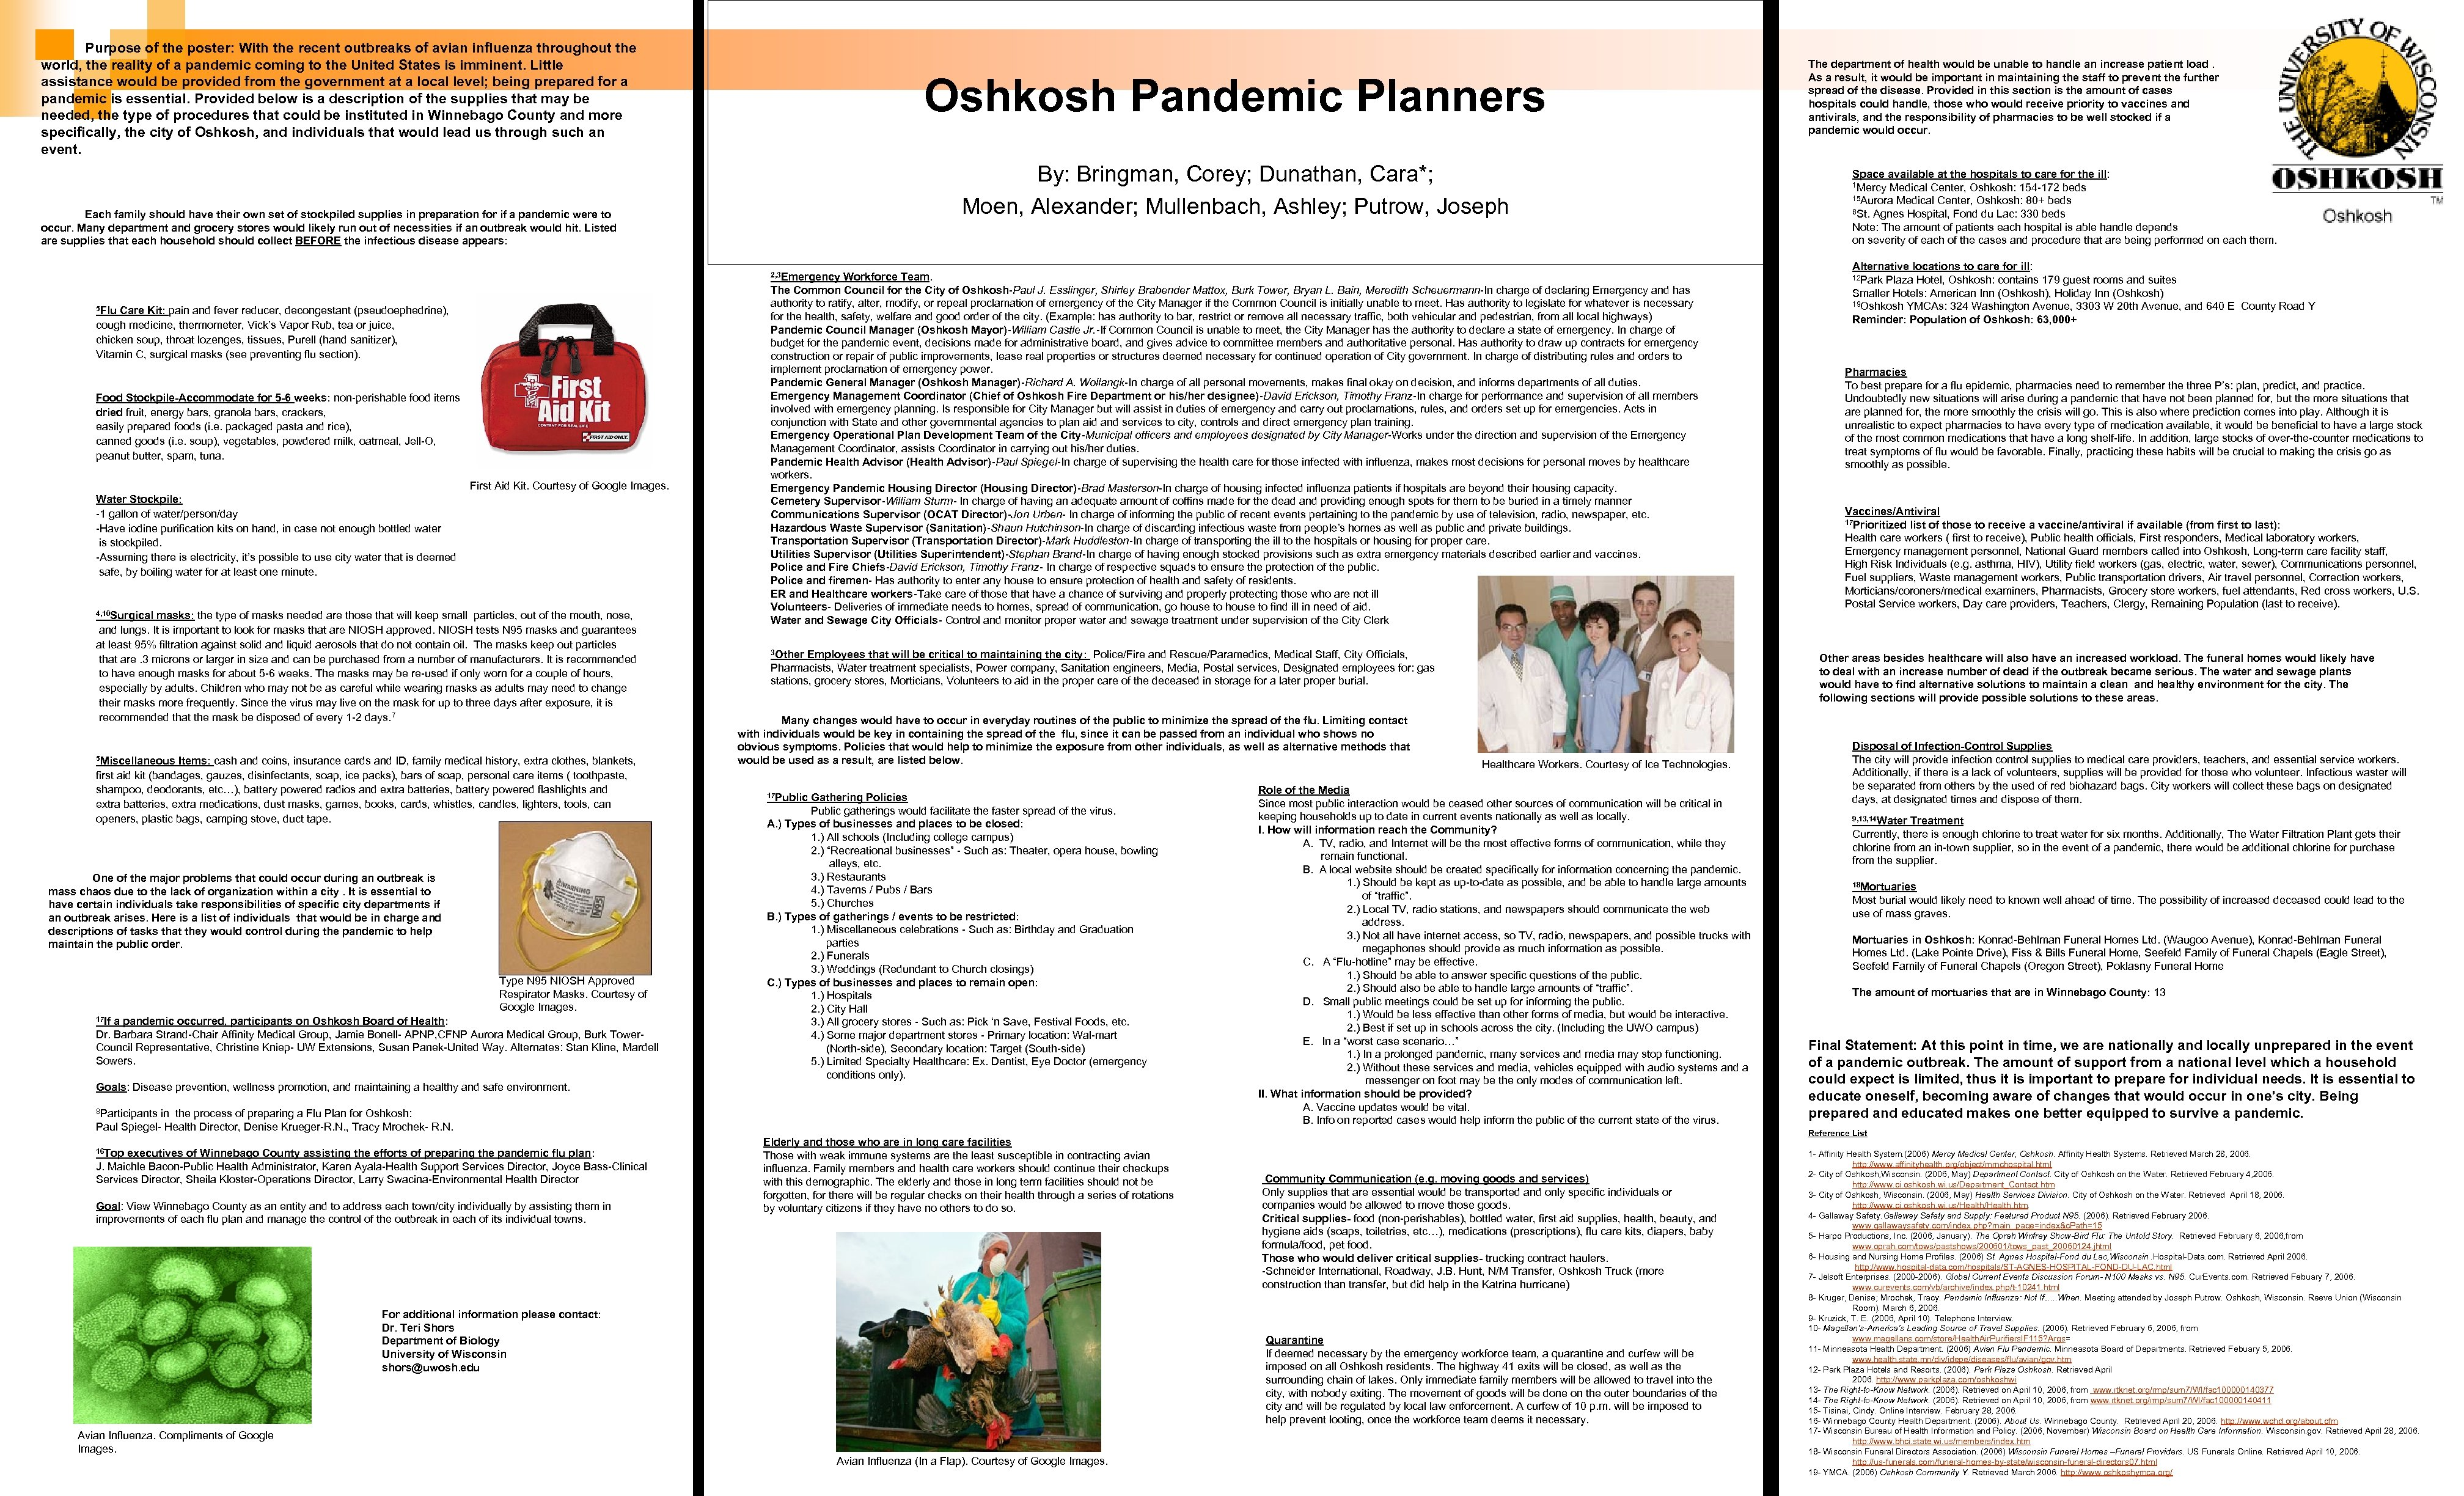 Purpose of the poster: With the recent outbreaks of avian influenza throughout the world,